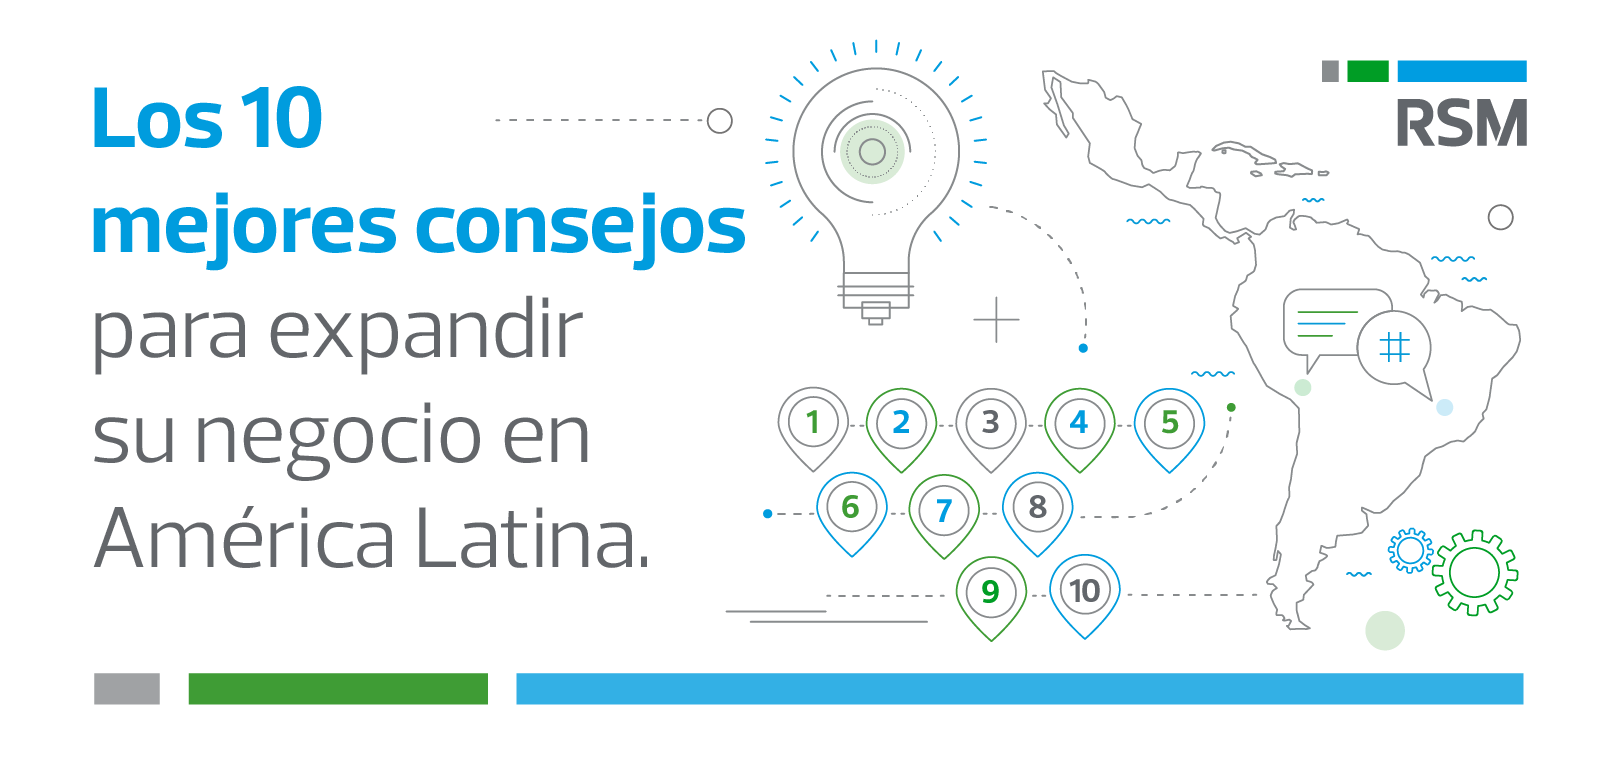 public://media/10_top_tips_for_expanding_your_business_in_latin_america_article_spanish_770pxx367px.png